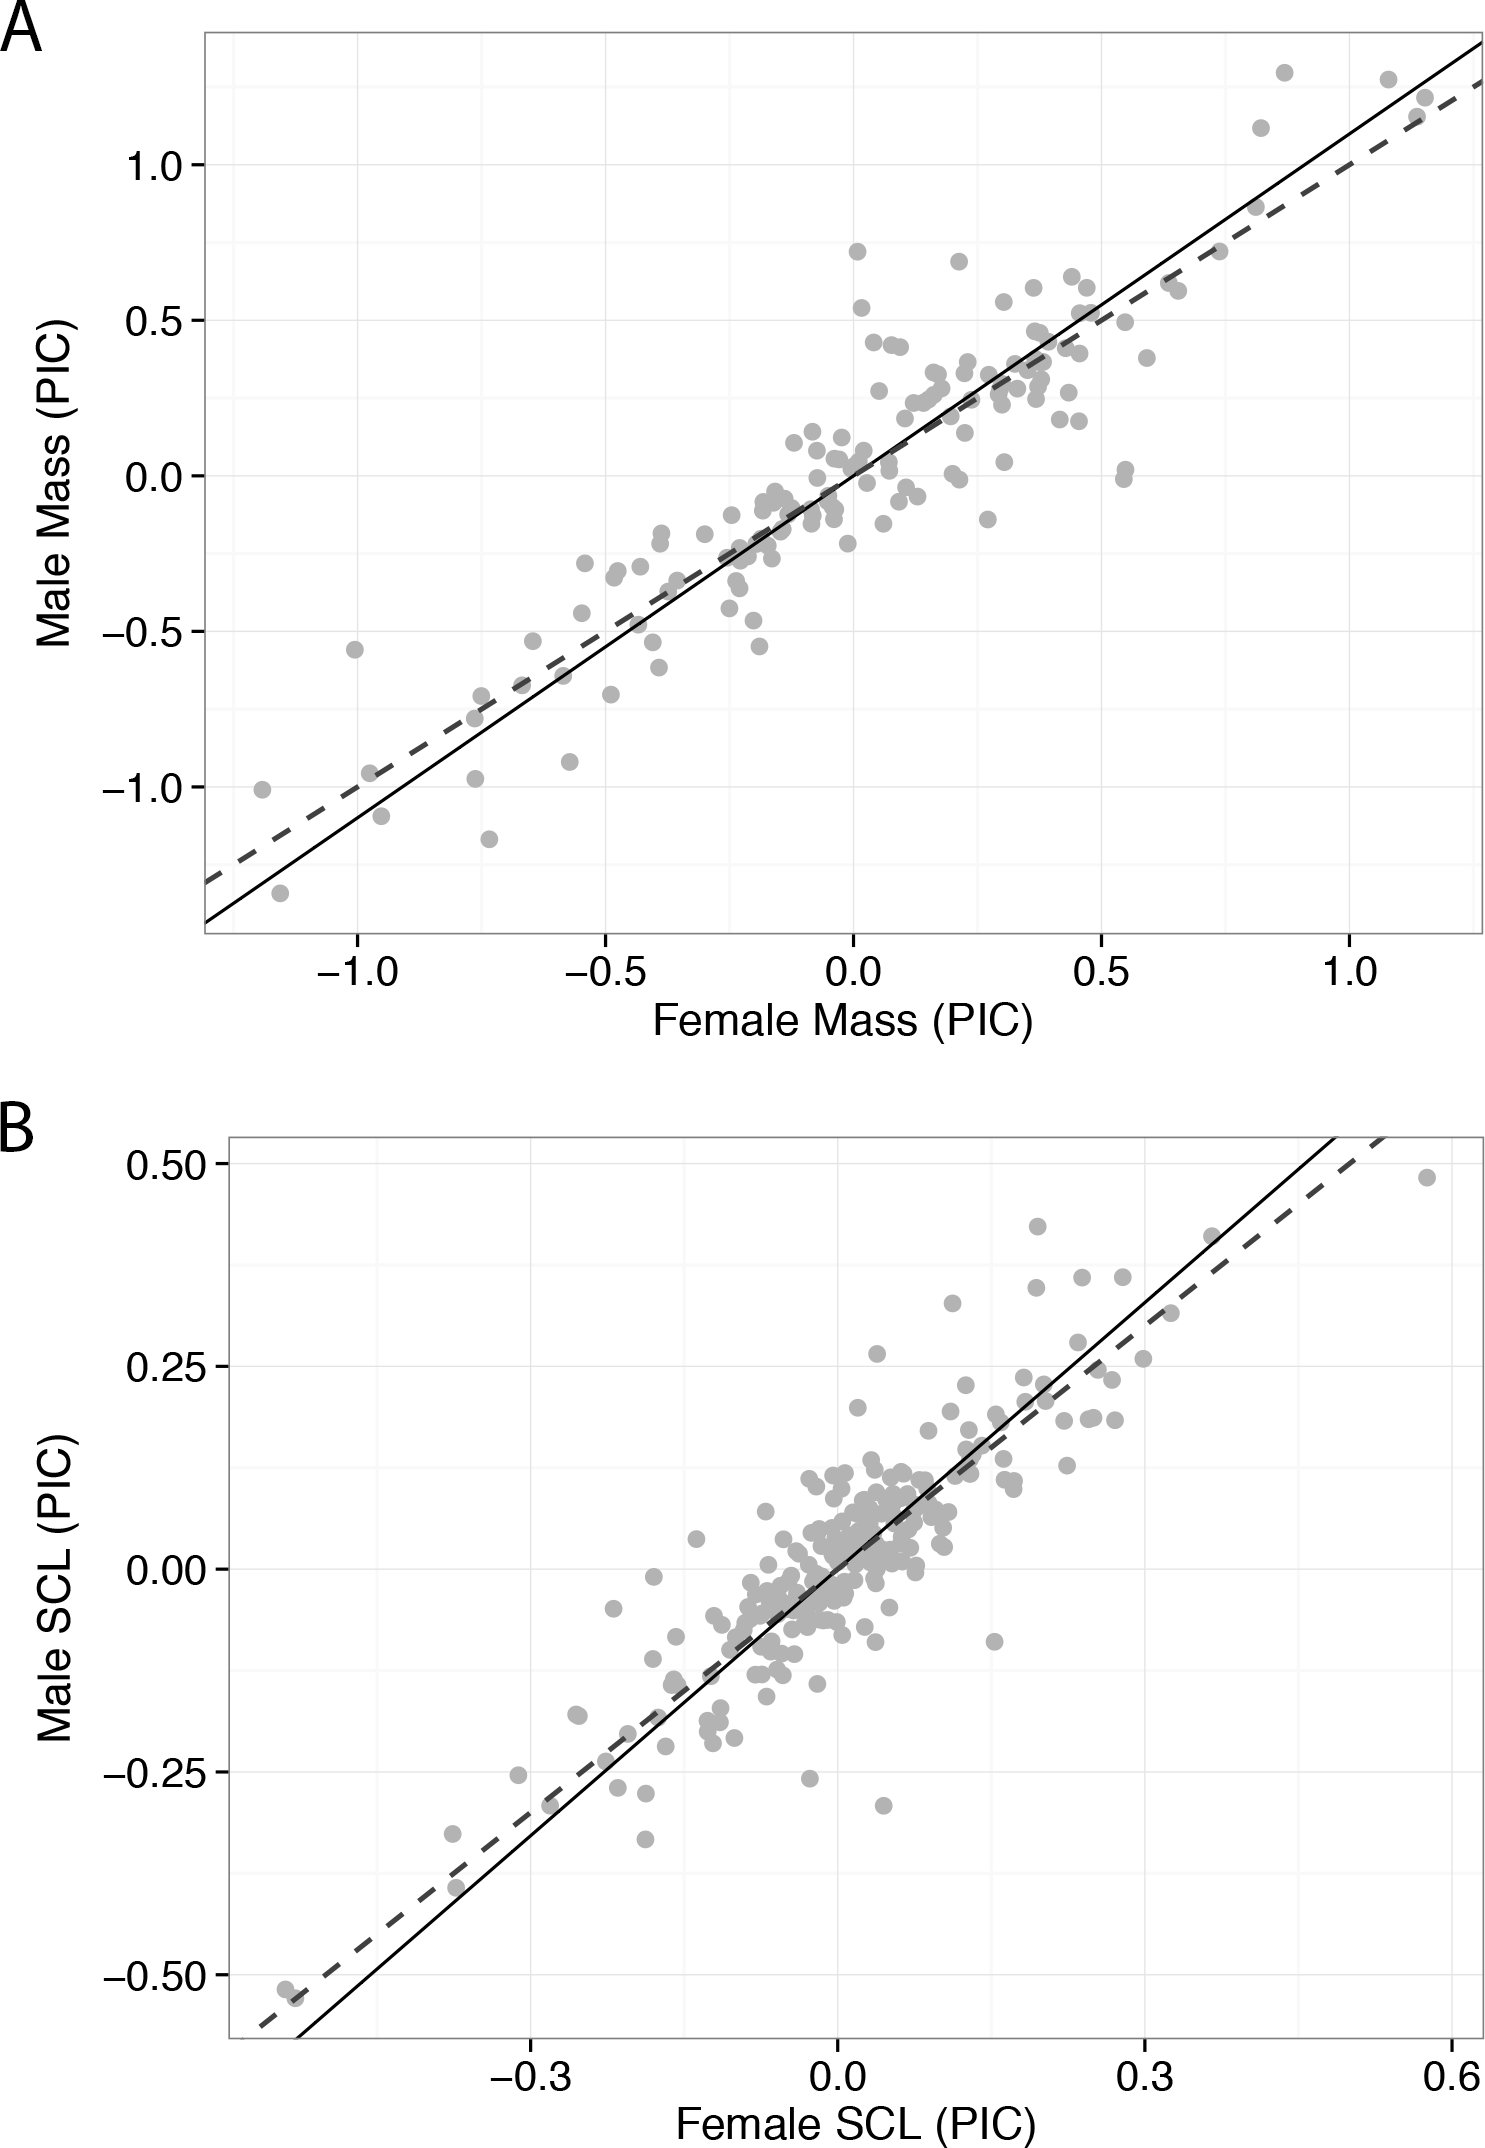 Statistics of sexual size dimorphism definition